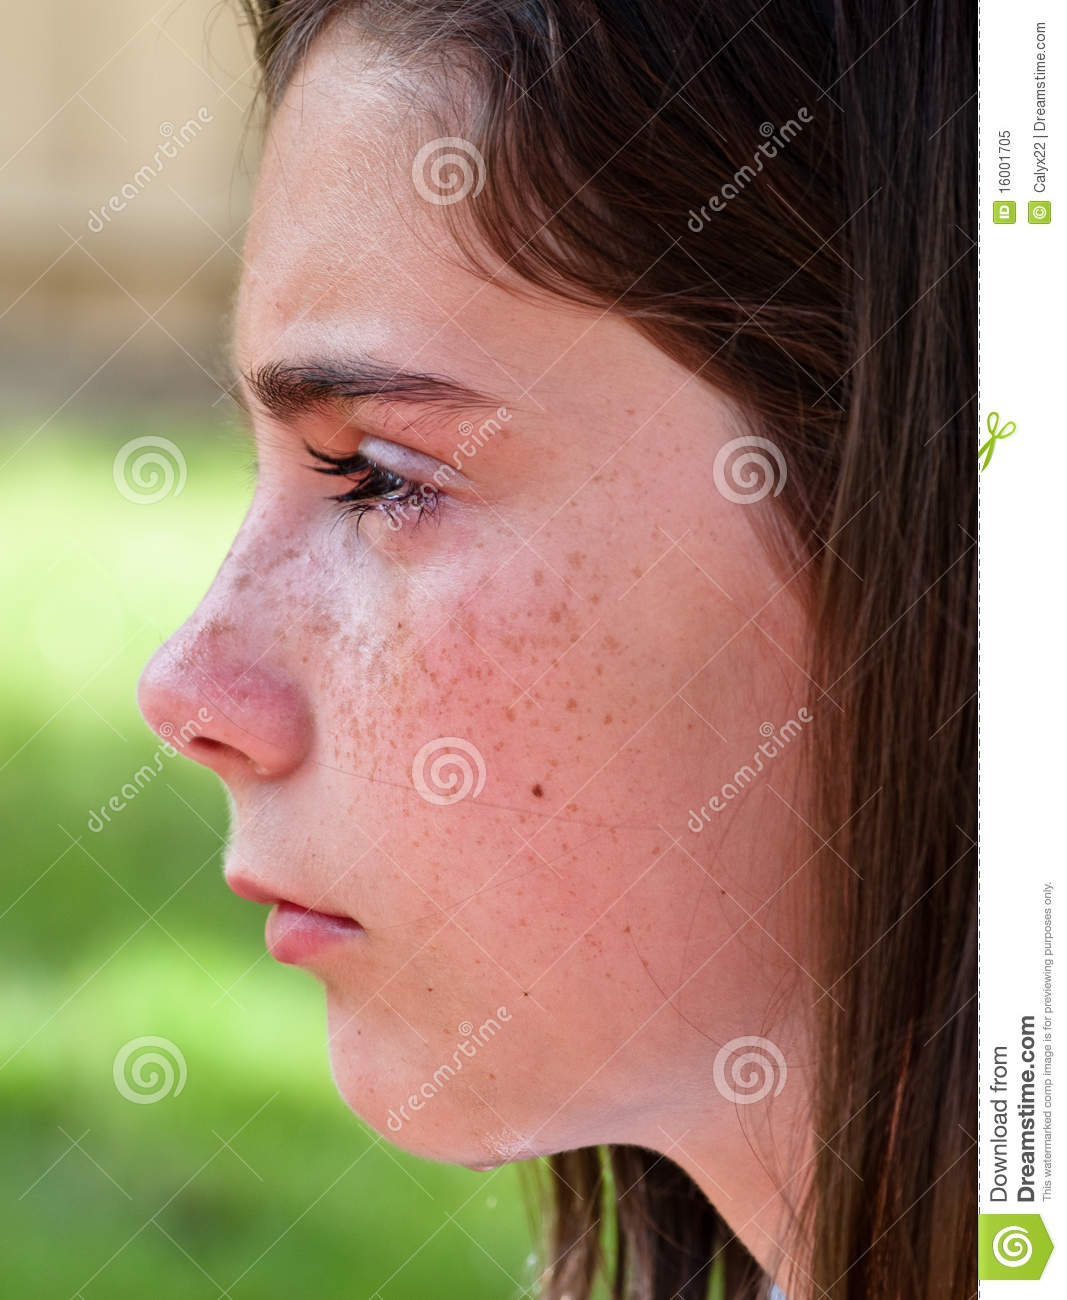 profile of crying girl royalty free stock photo